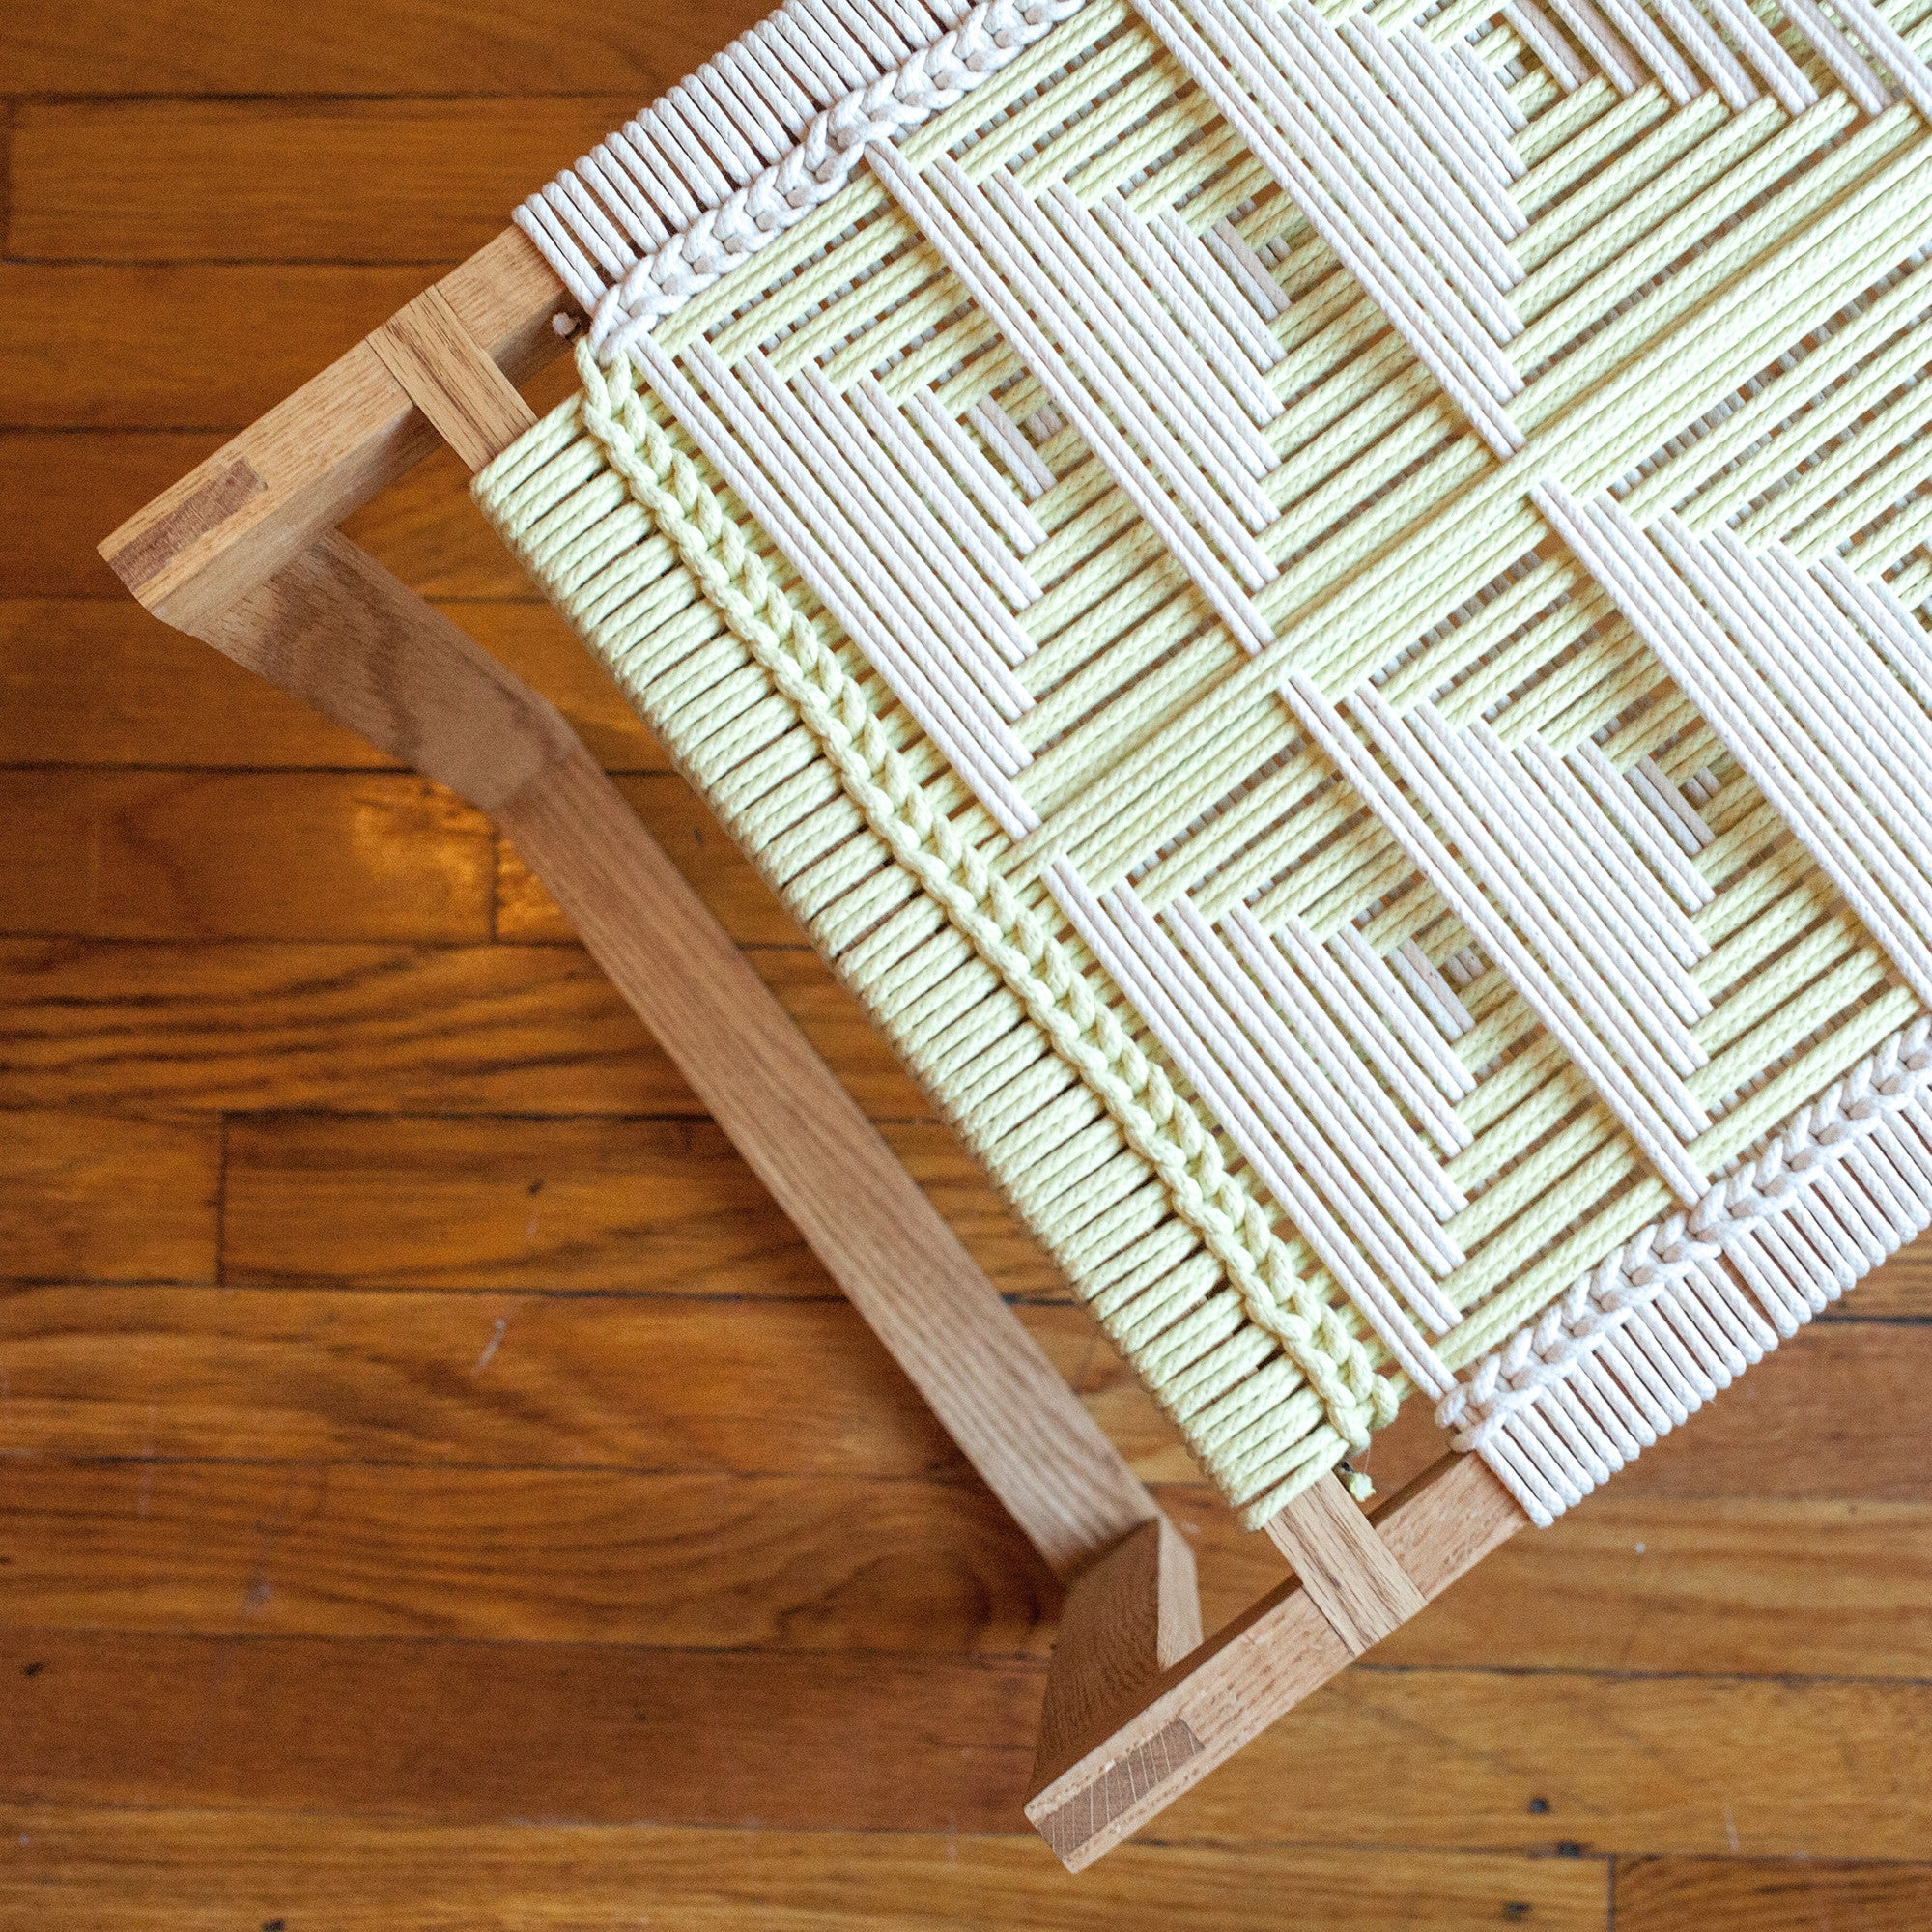 American-made Lemon + White Stool by Peg Woodworking - Carpenter Hill